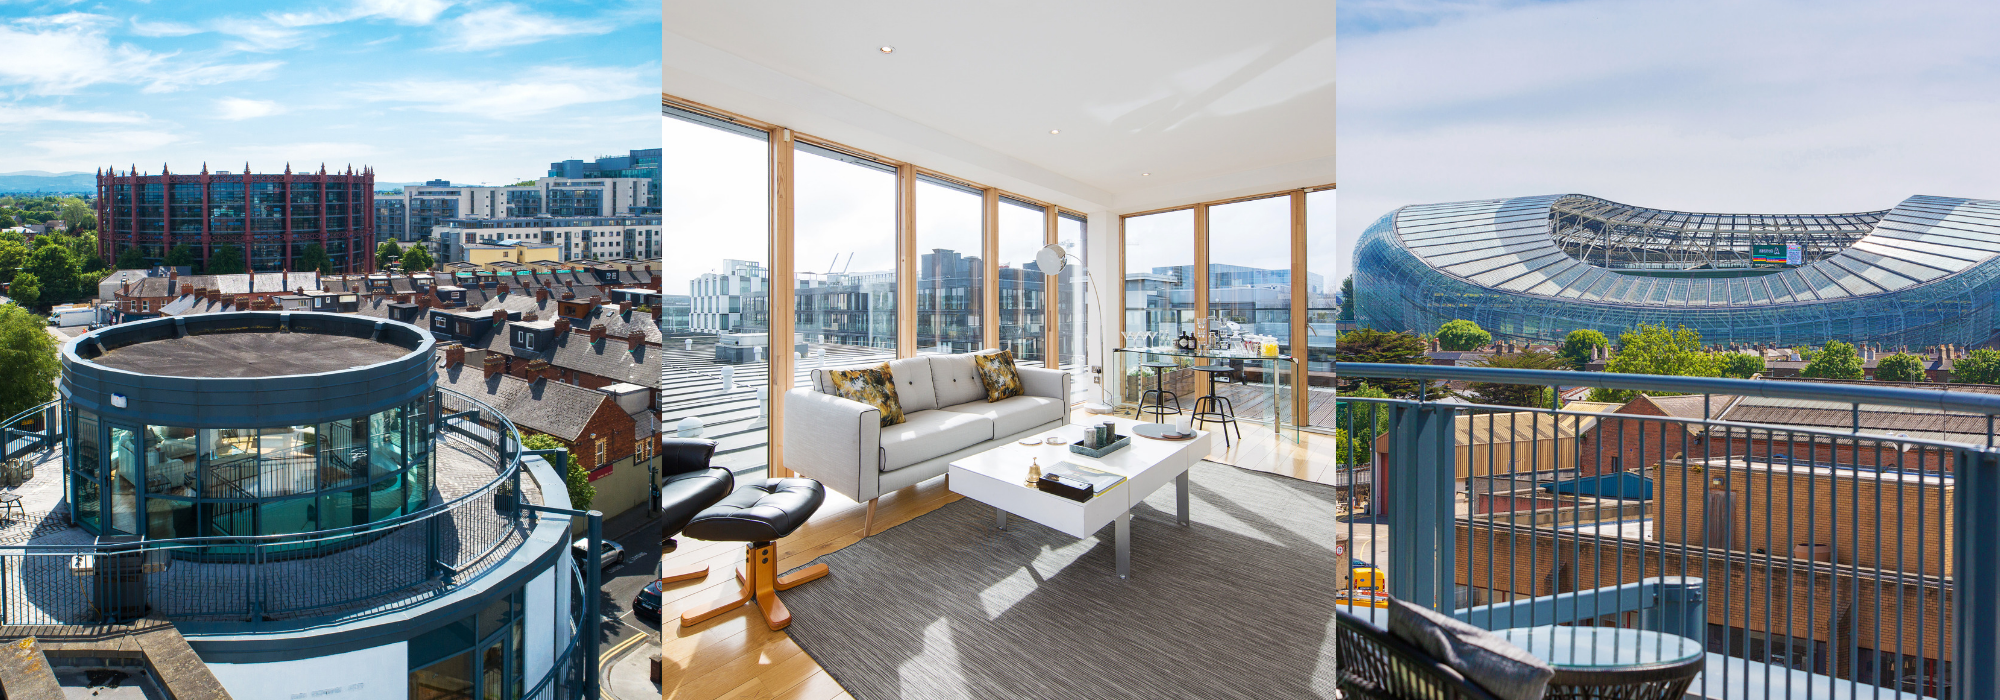 Three superb Penthouses to buy in Dublin right now